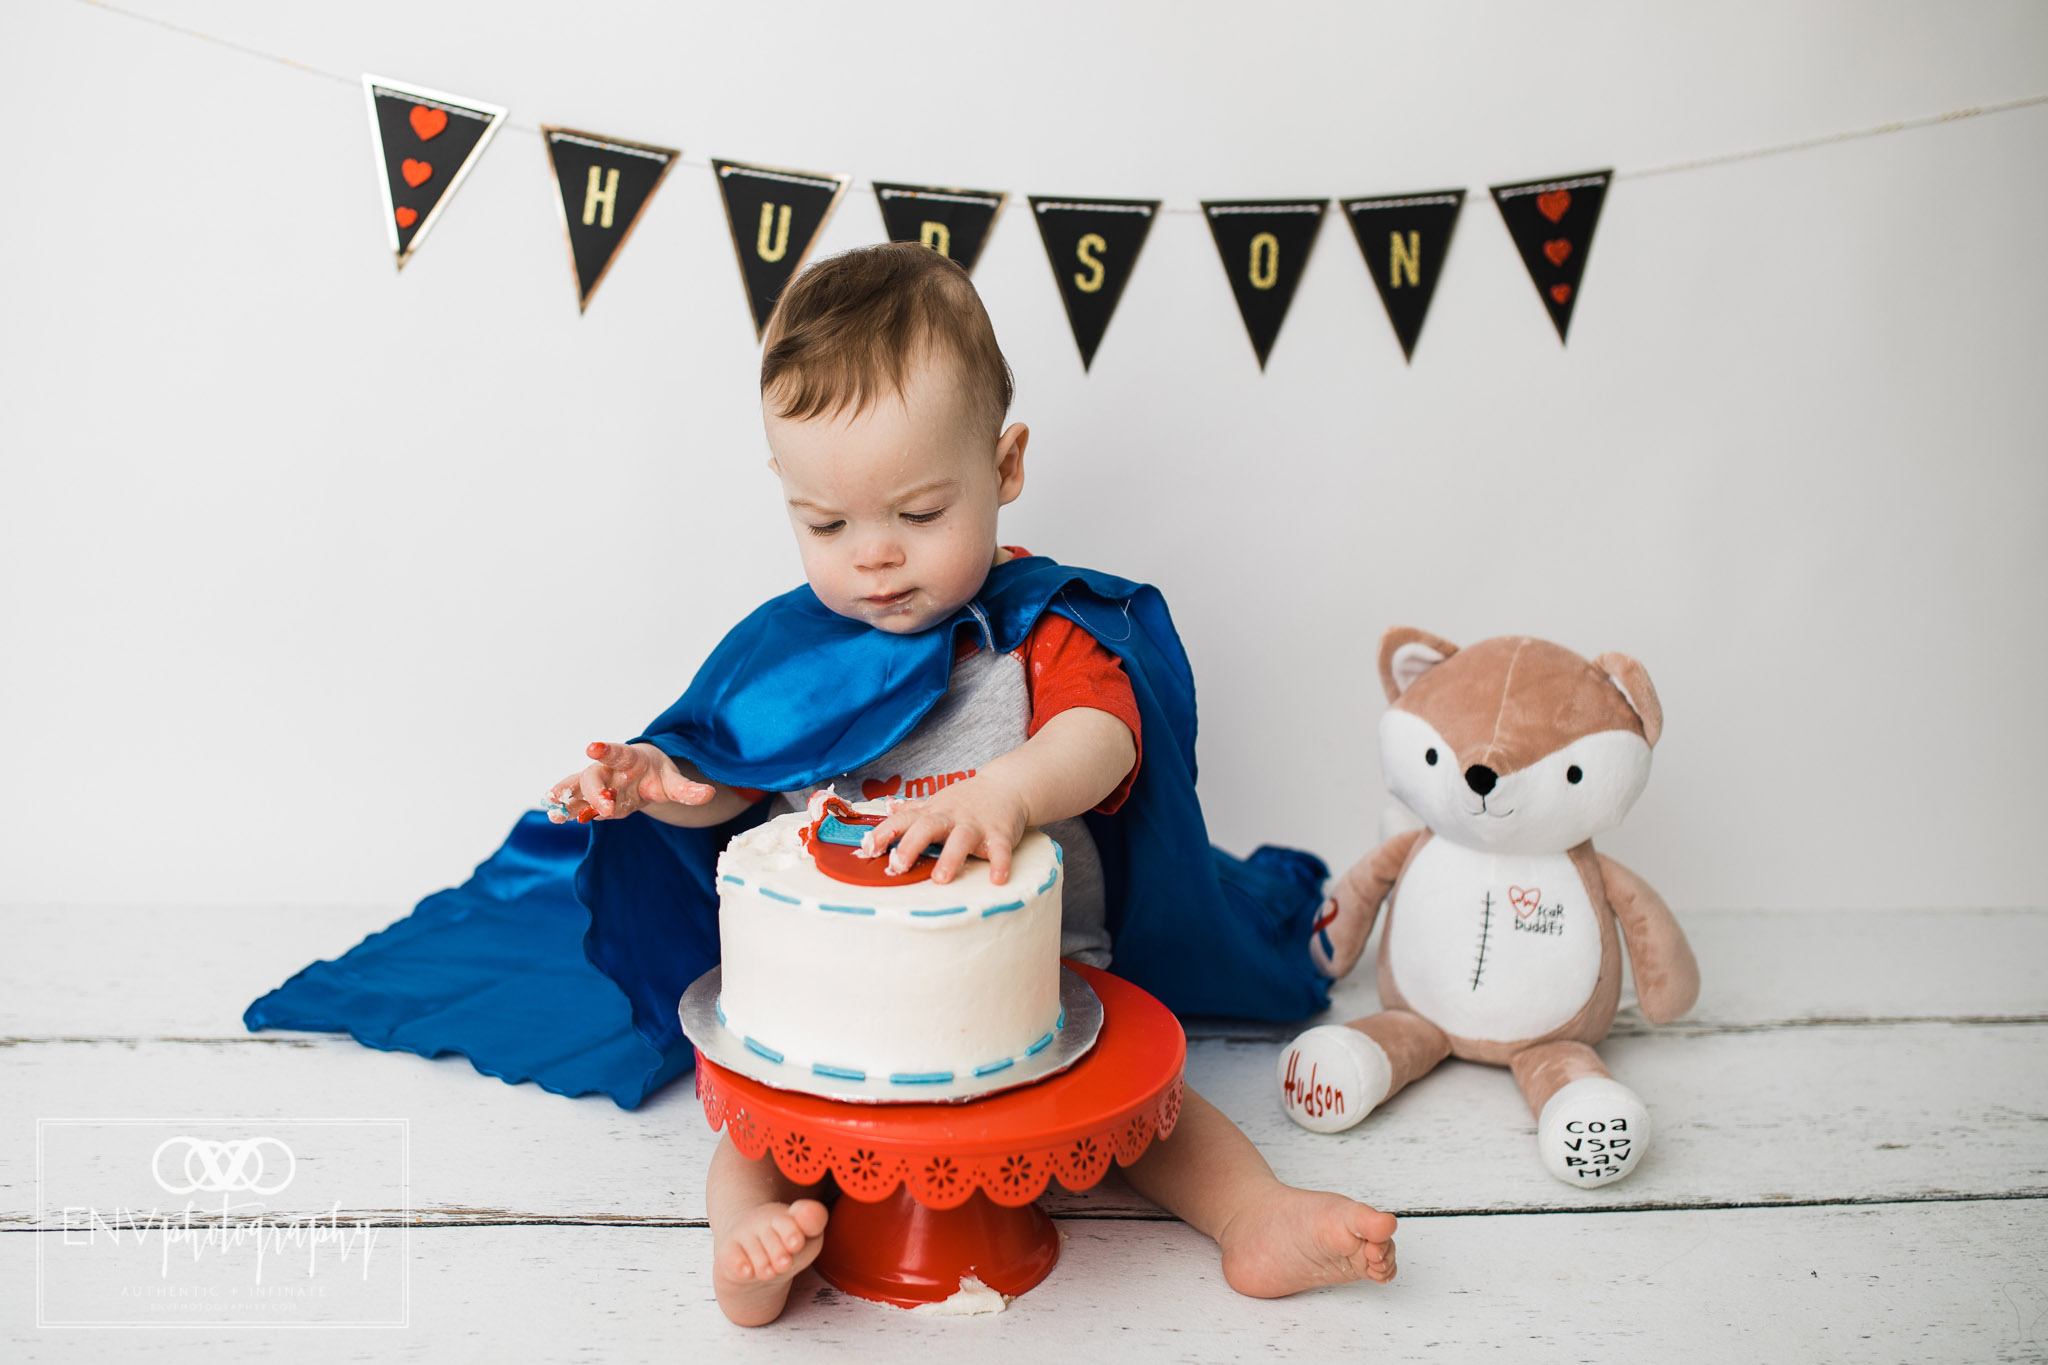 Mount Vernon Columbus Ohio Family Photographer First Birthday Cake Smash (20).jpg